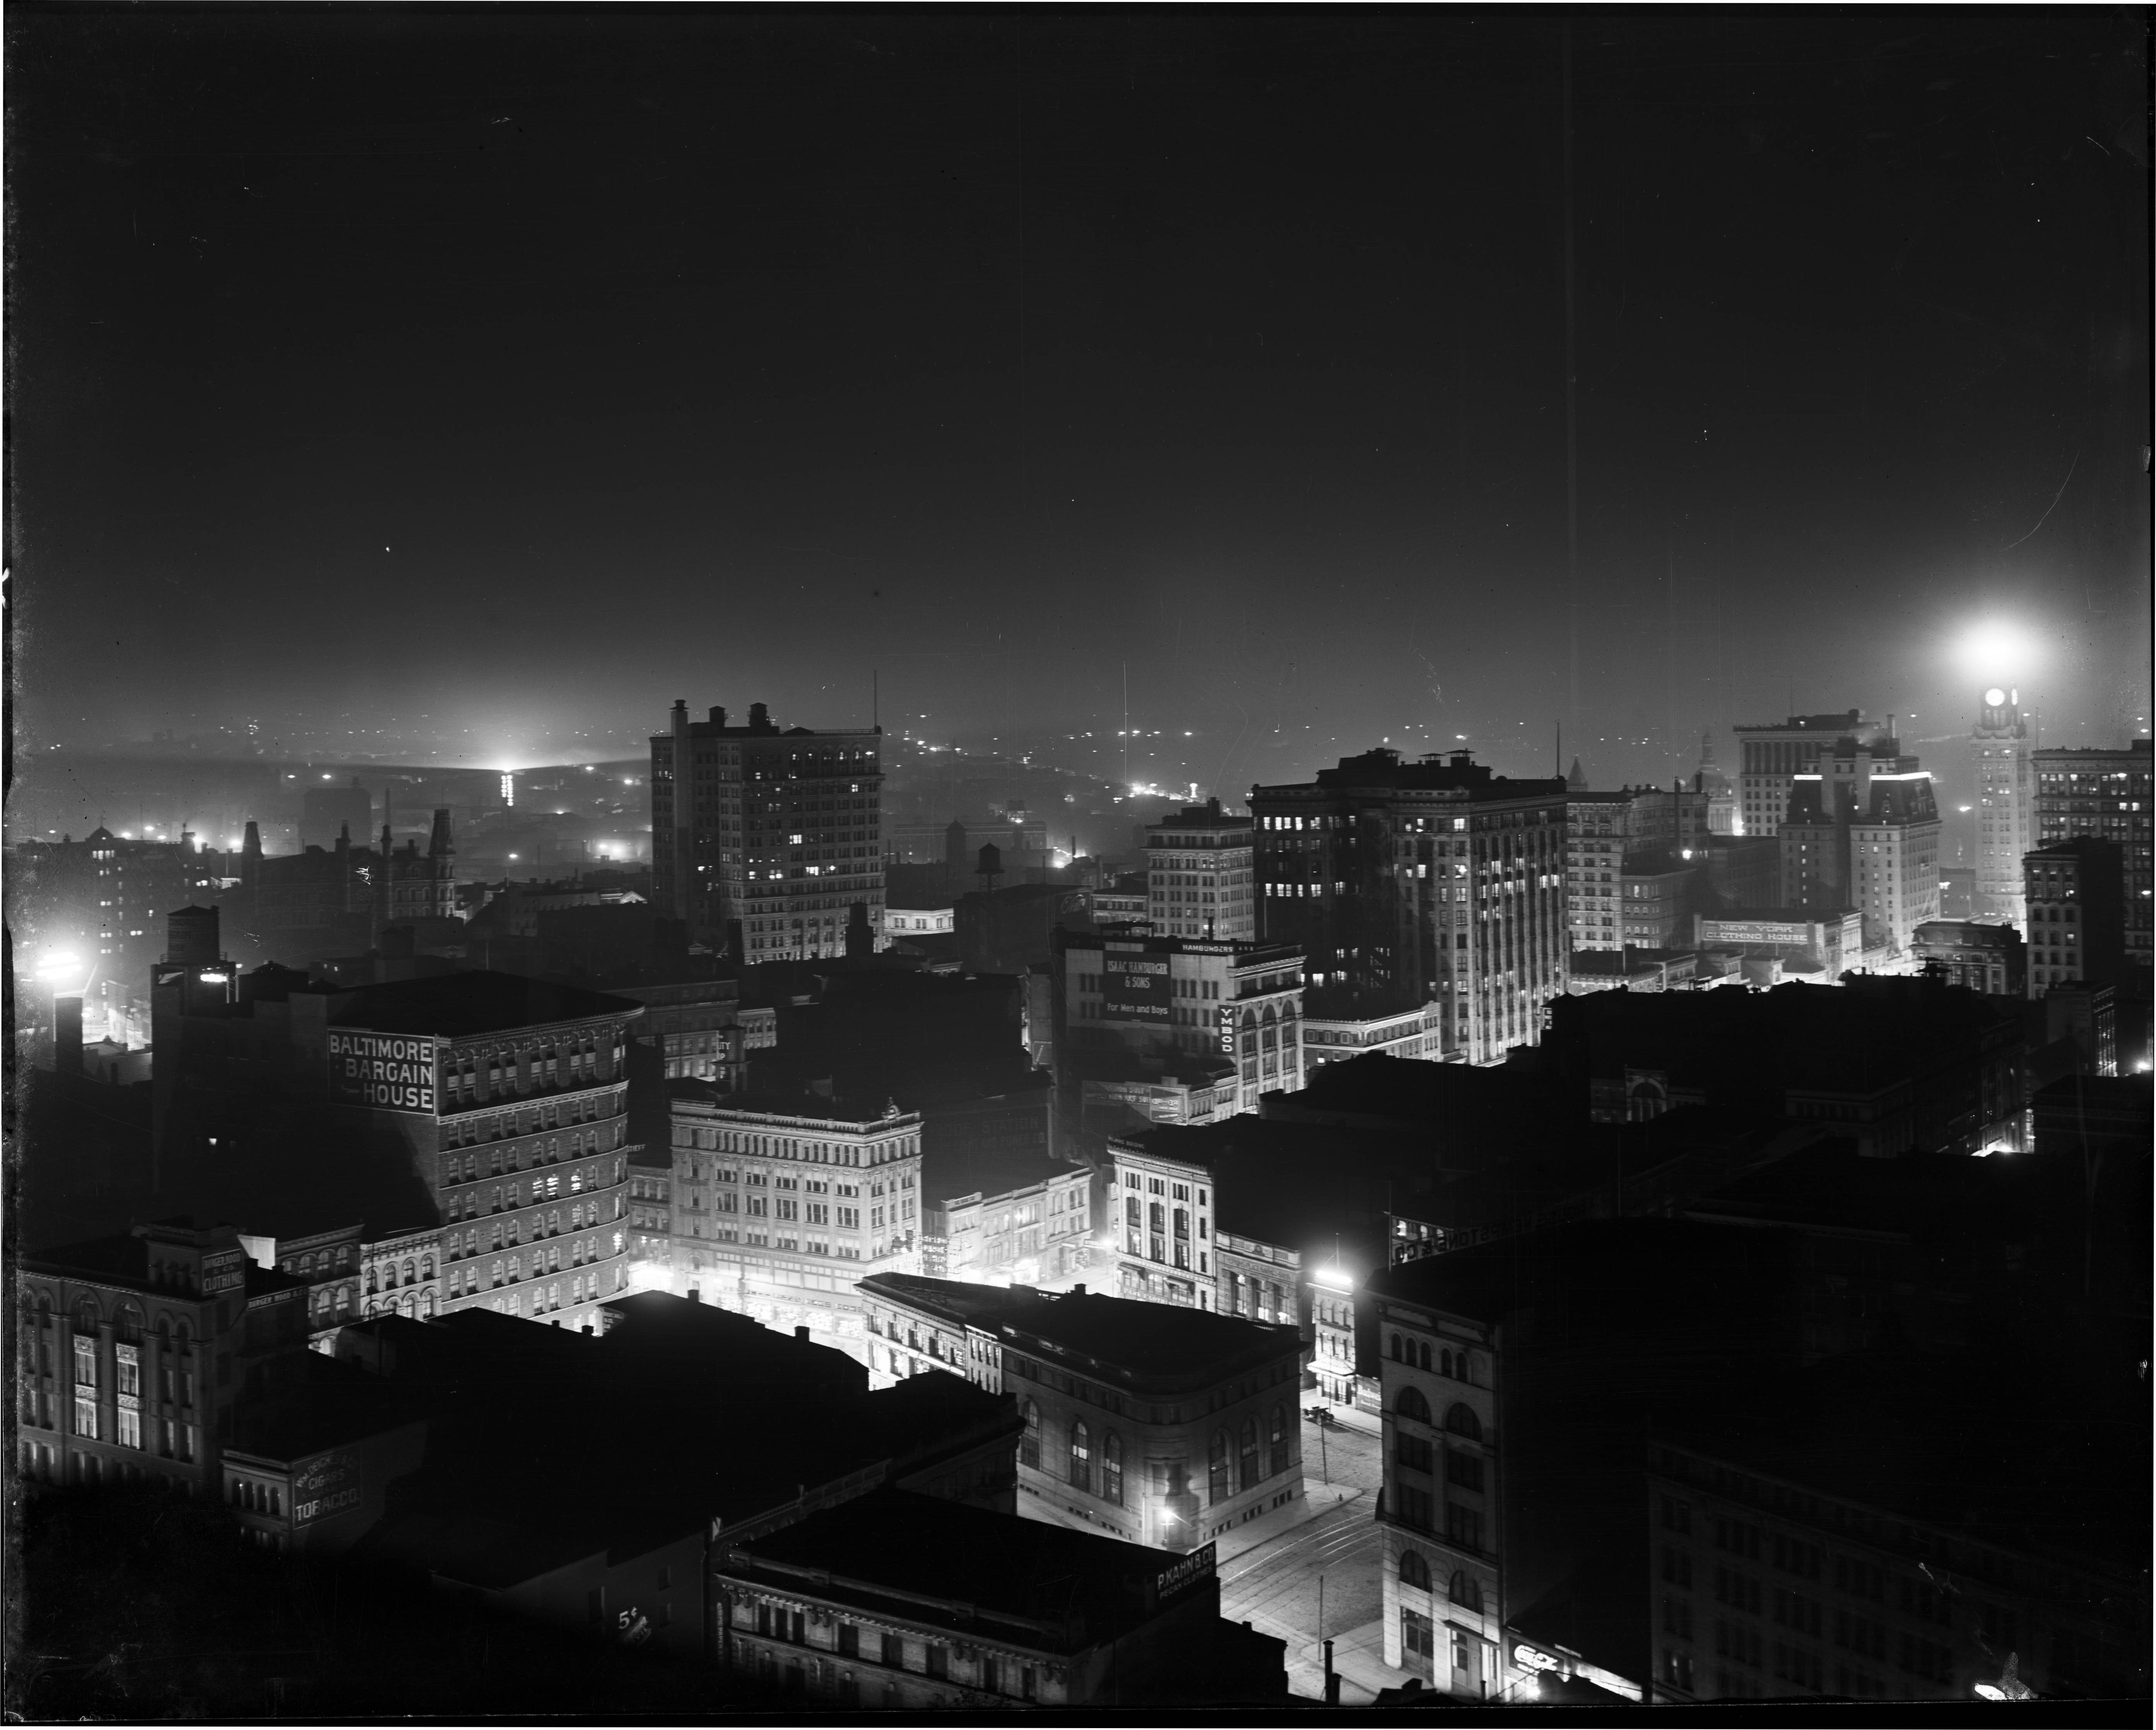 Baltimore at night from Emerson Tower